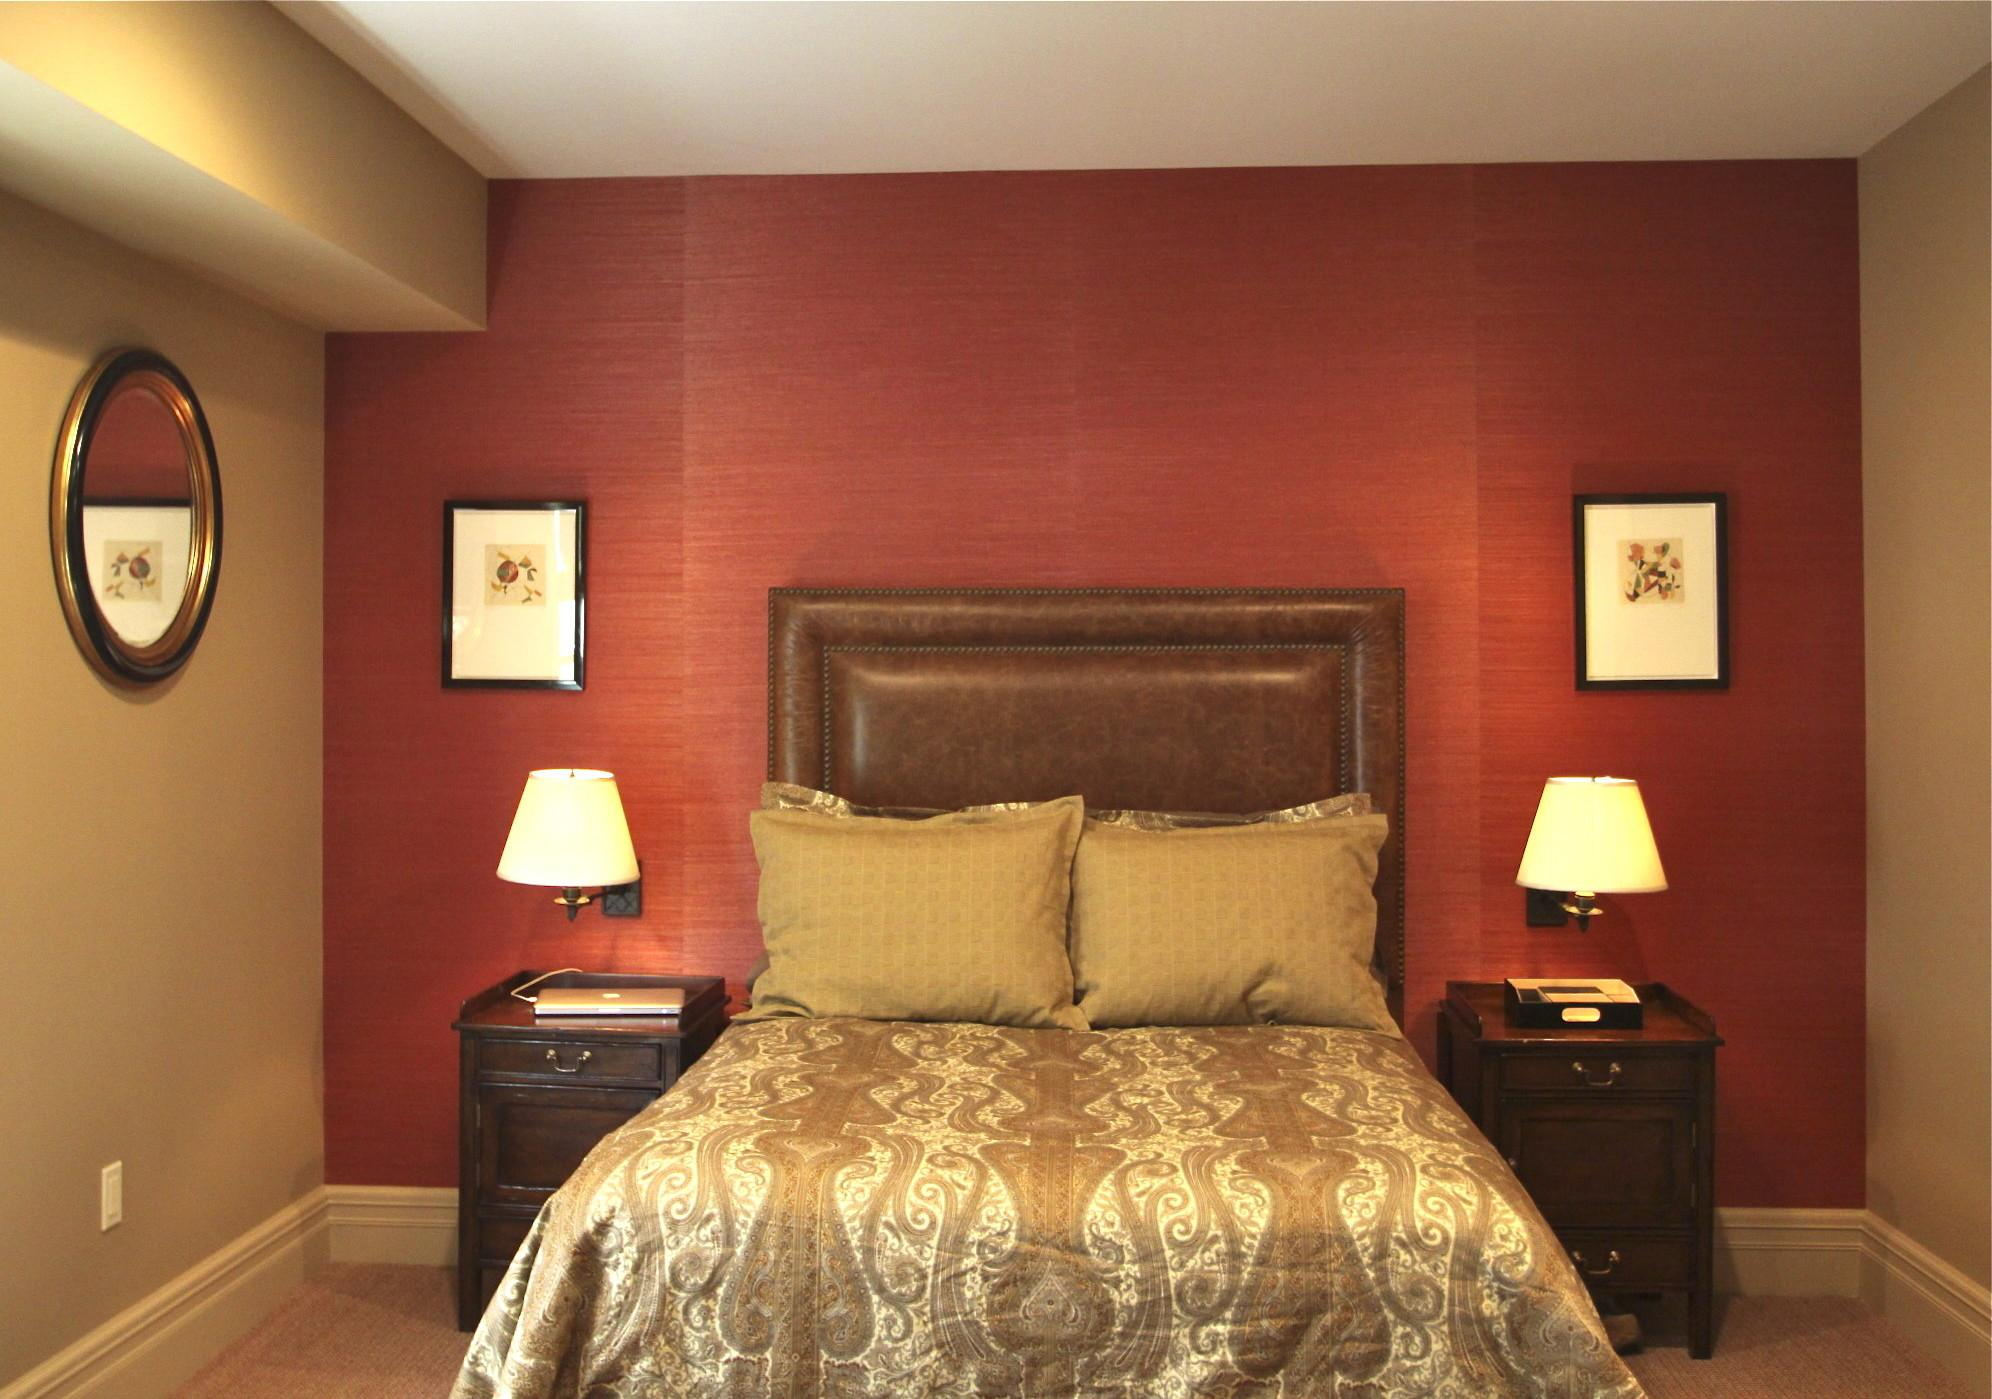 Remarkable Red Wall Painted Color Bedroom Decorating